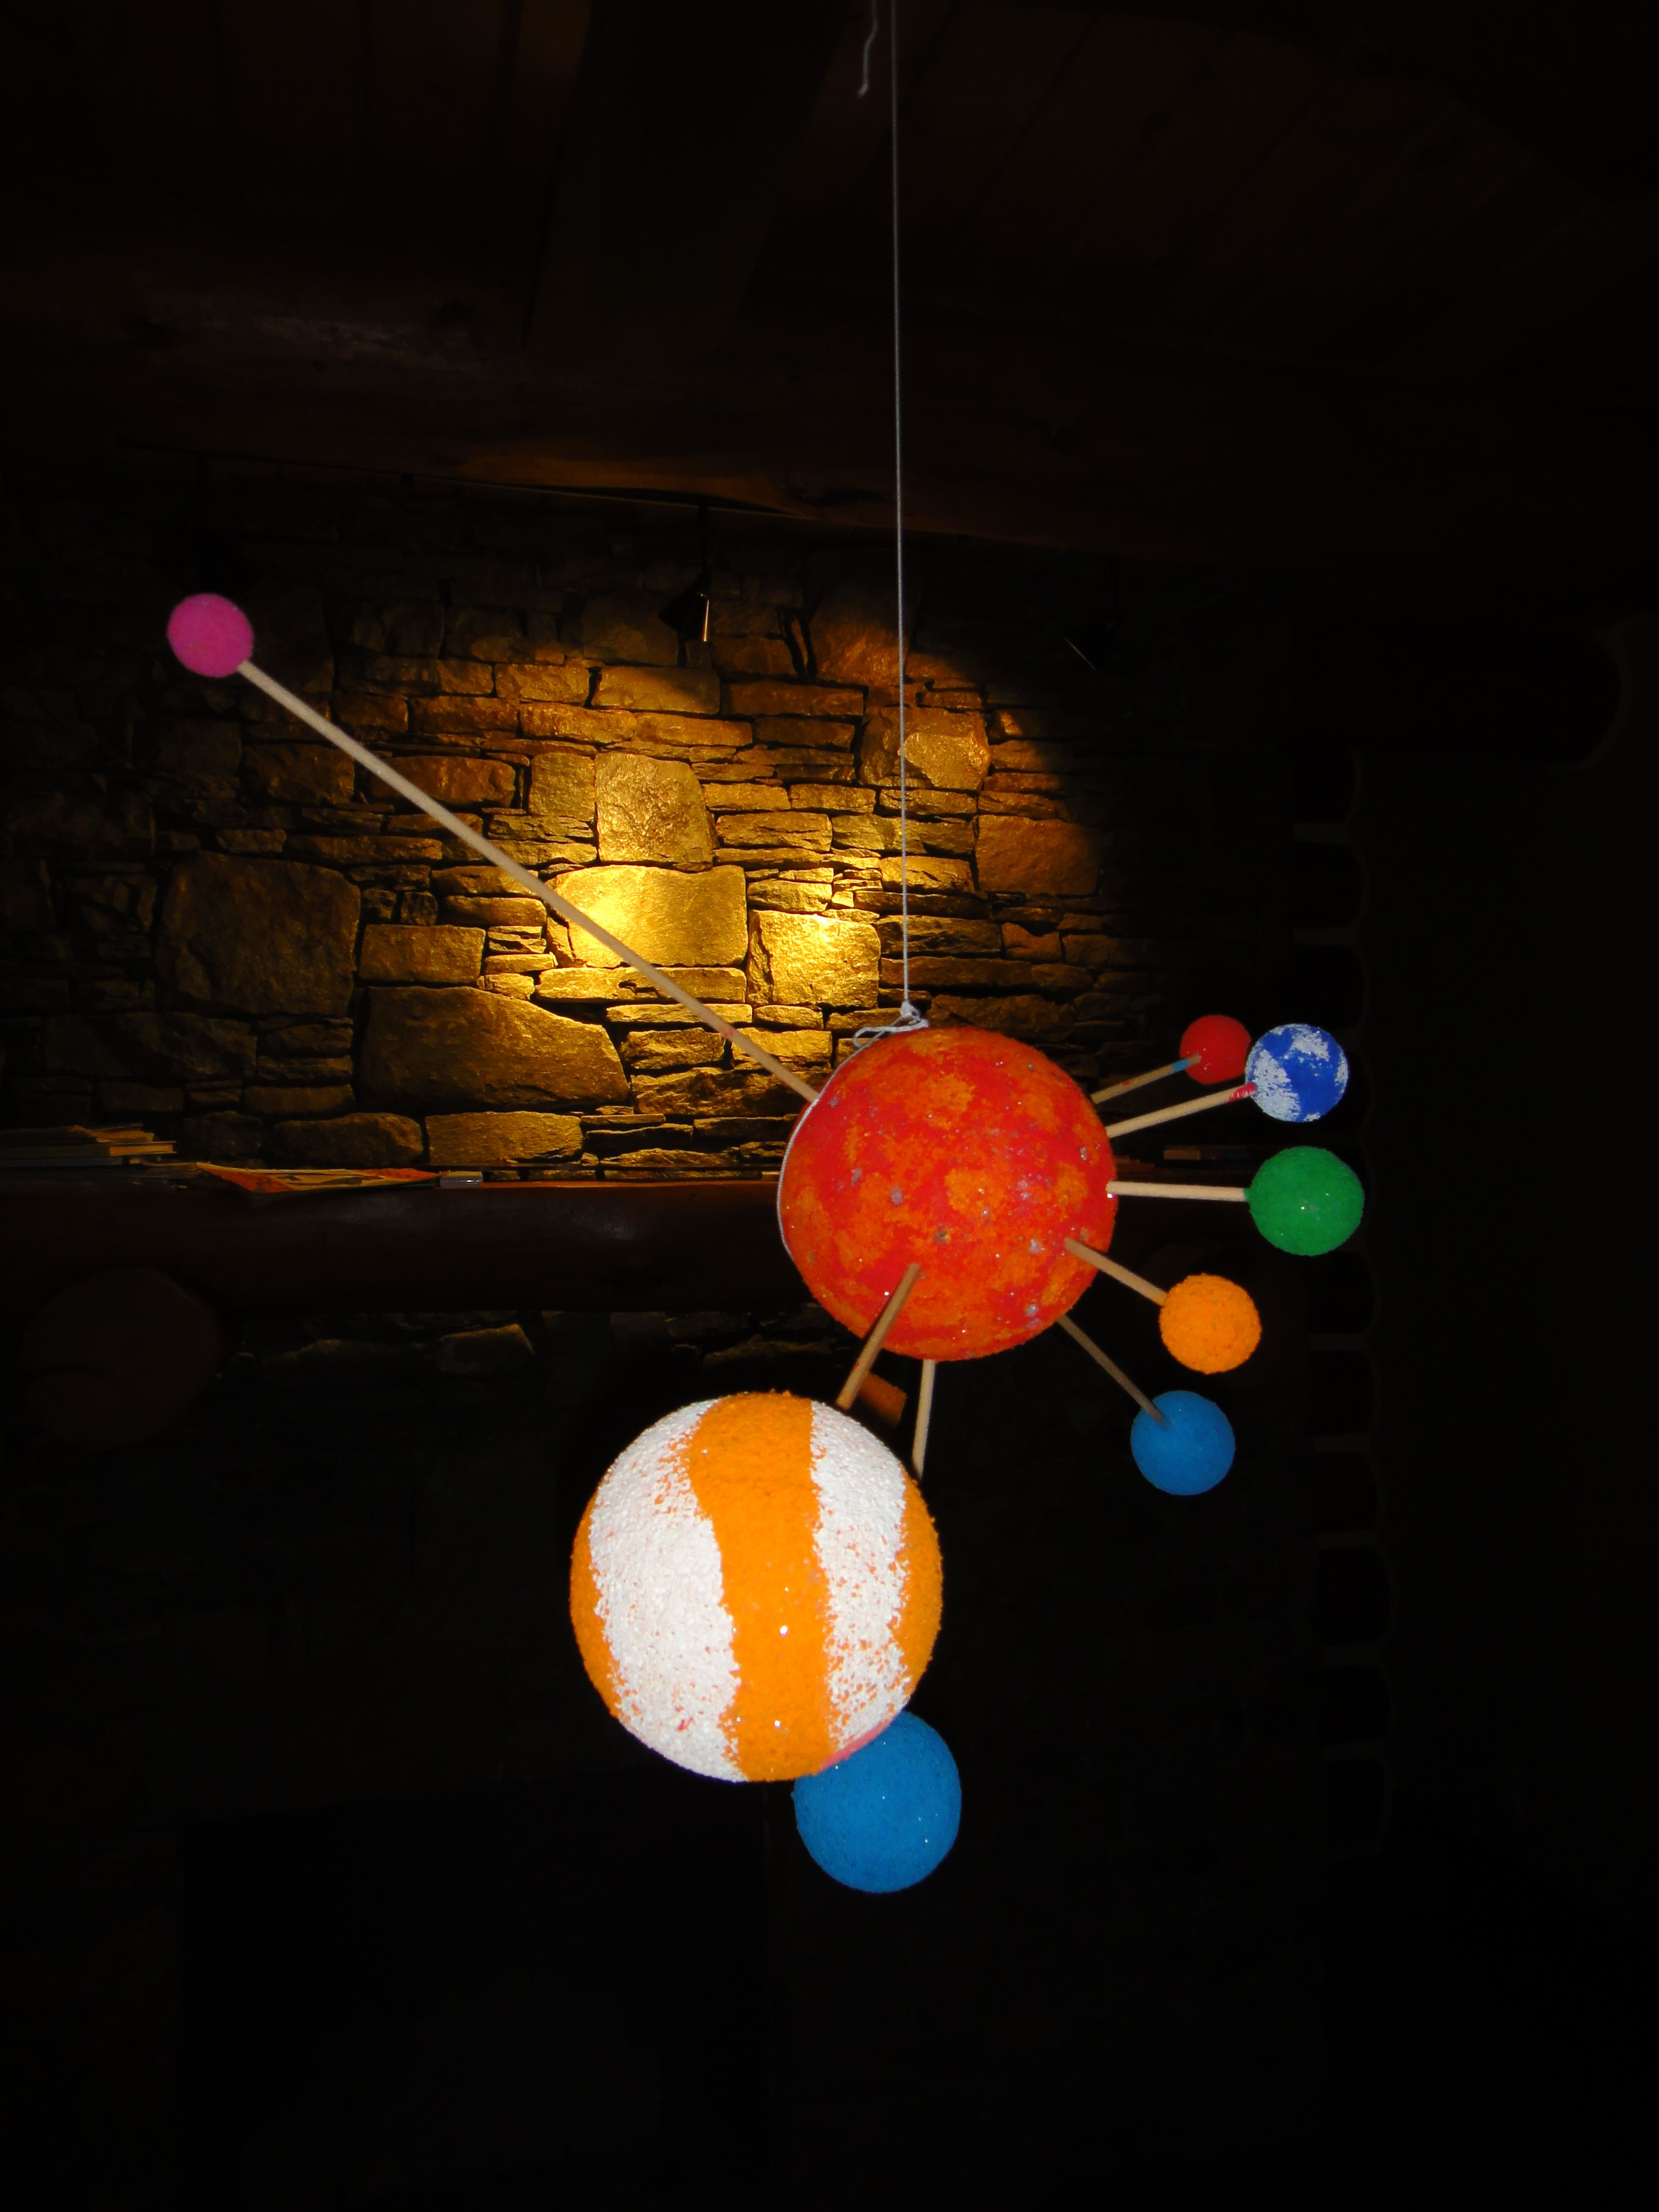 12 Crafts And Projects To Learn About The Solar System